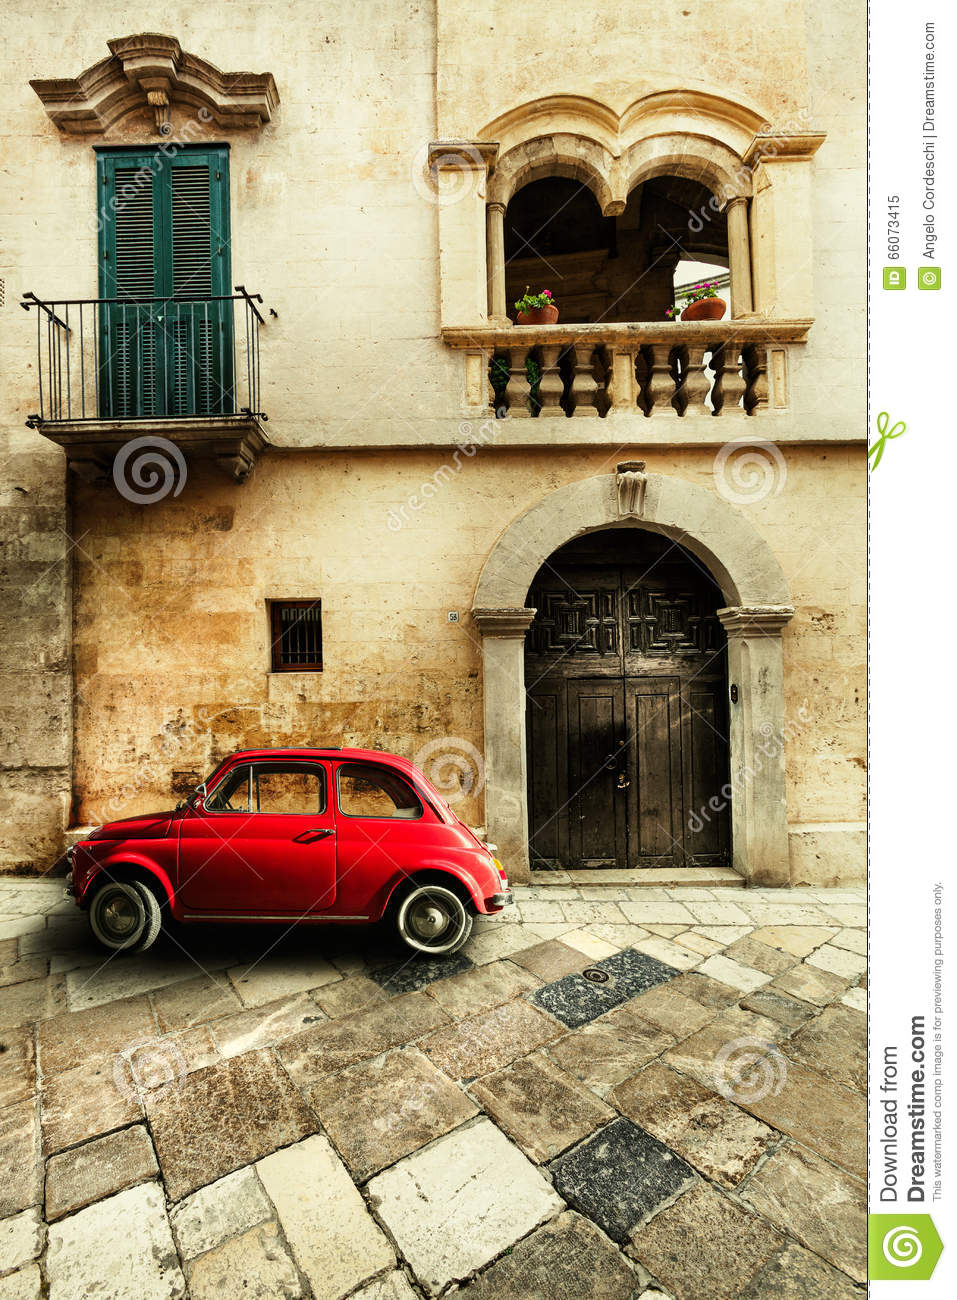 Vintage Car Old Italian Scene Stock Photo Image 66073415